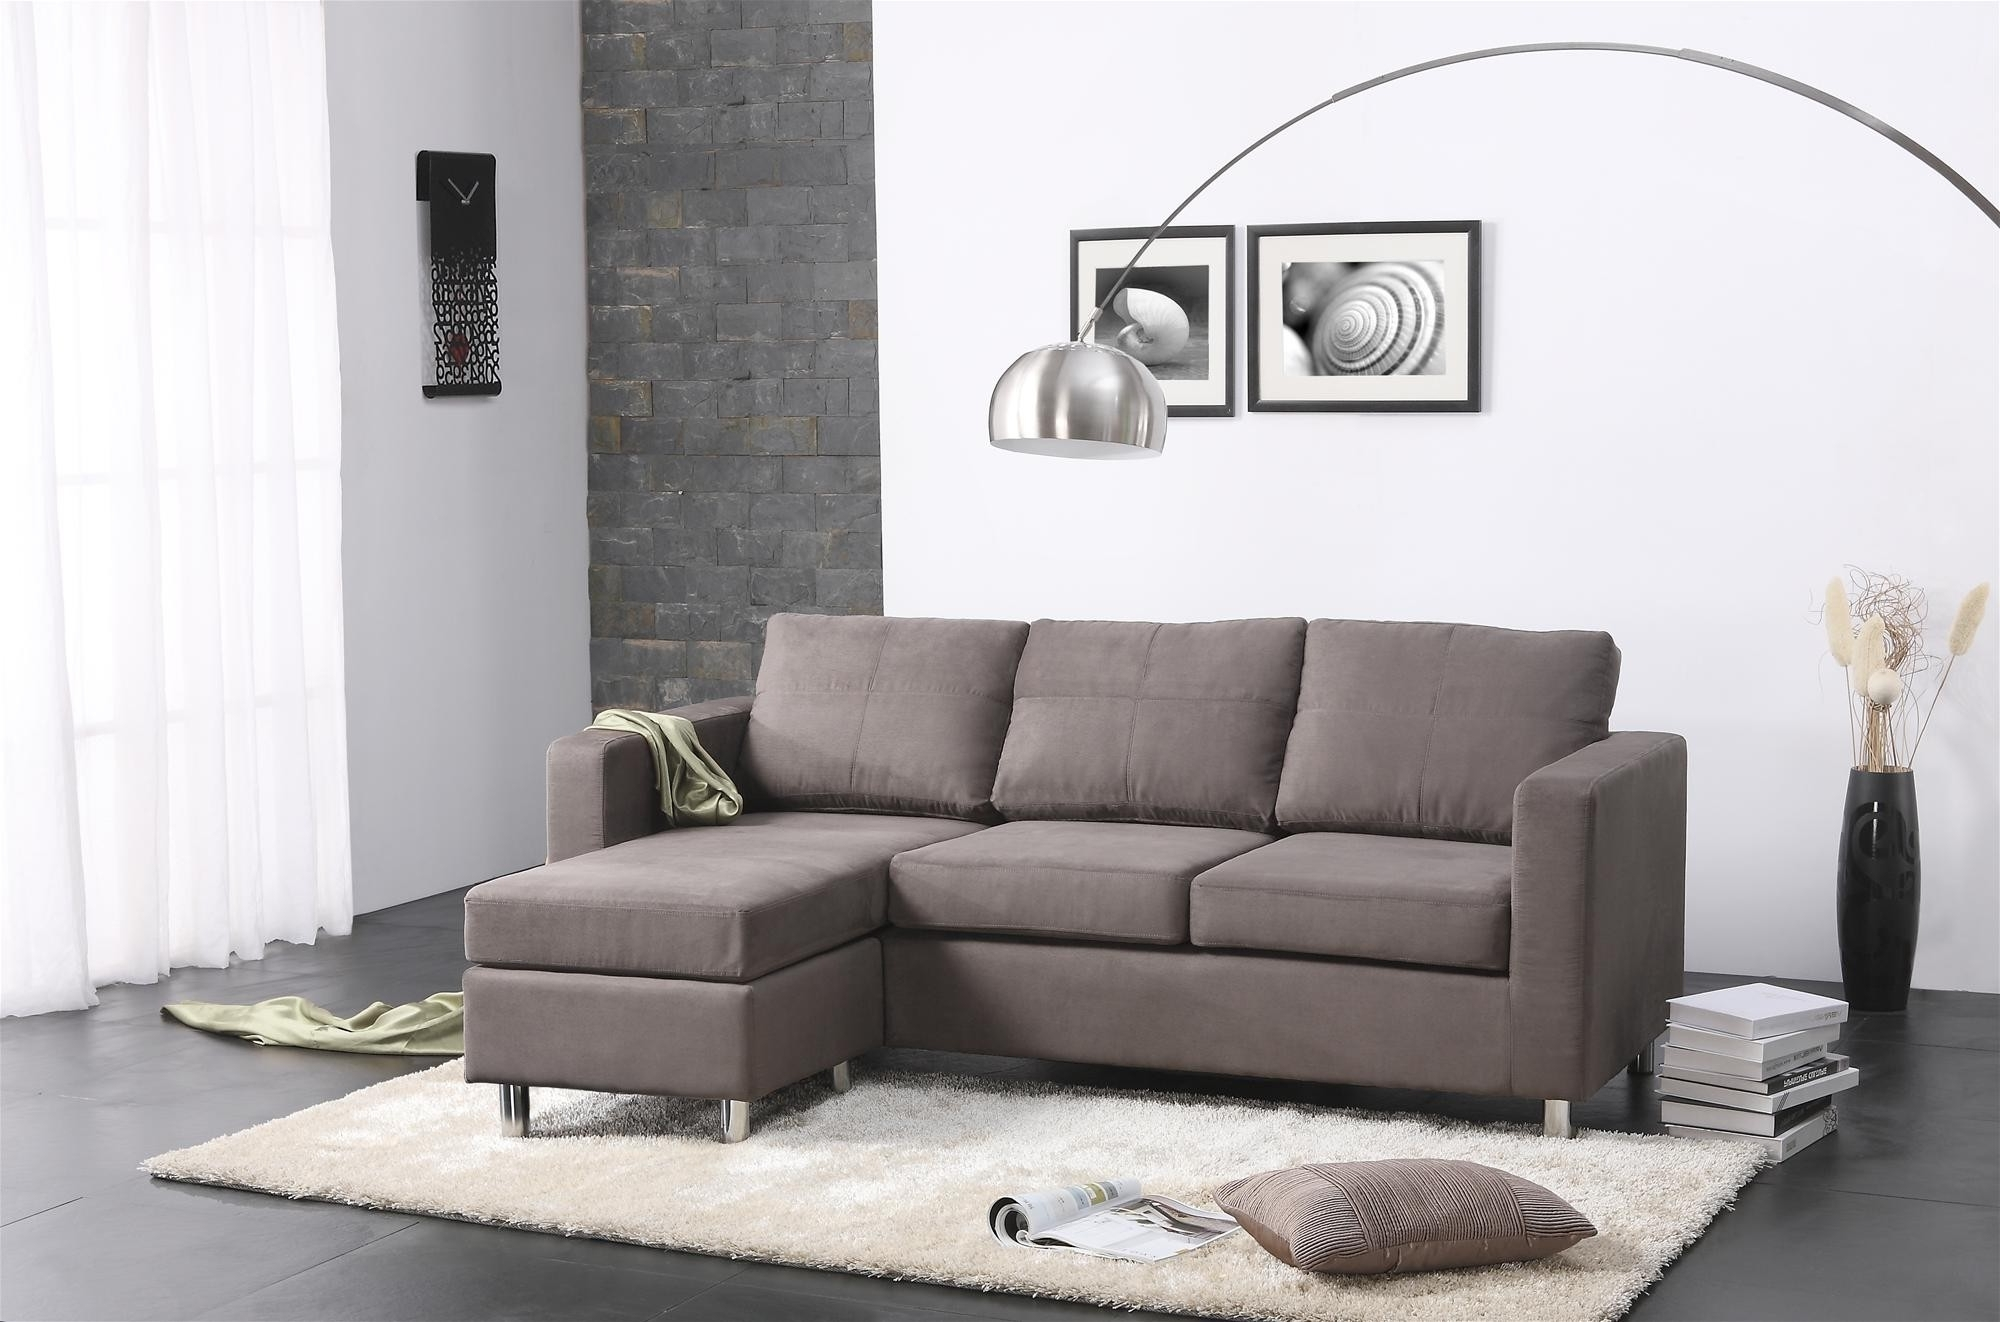 Popular Small Sectional Sofas With Chaise Lounge Inside Awesome Find Small Sectional Sofas For Small Spaces 25 On (View 10 of 15)